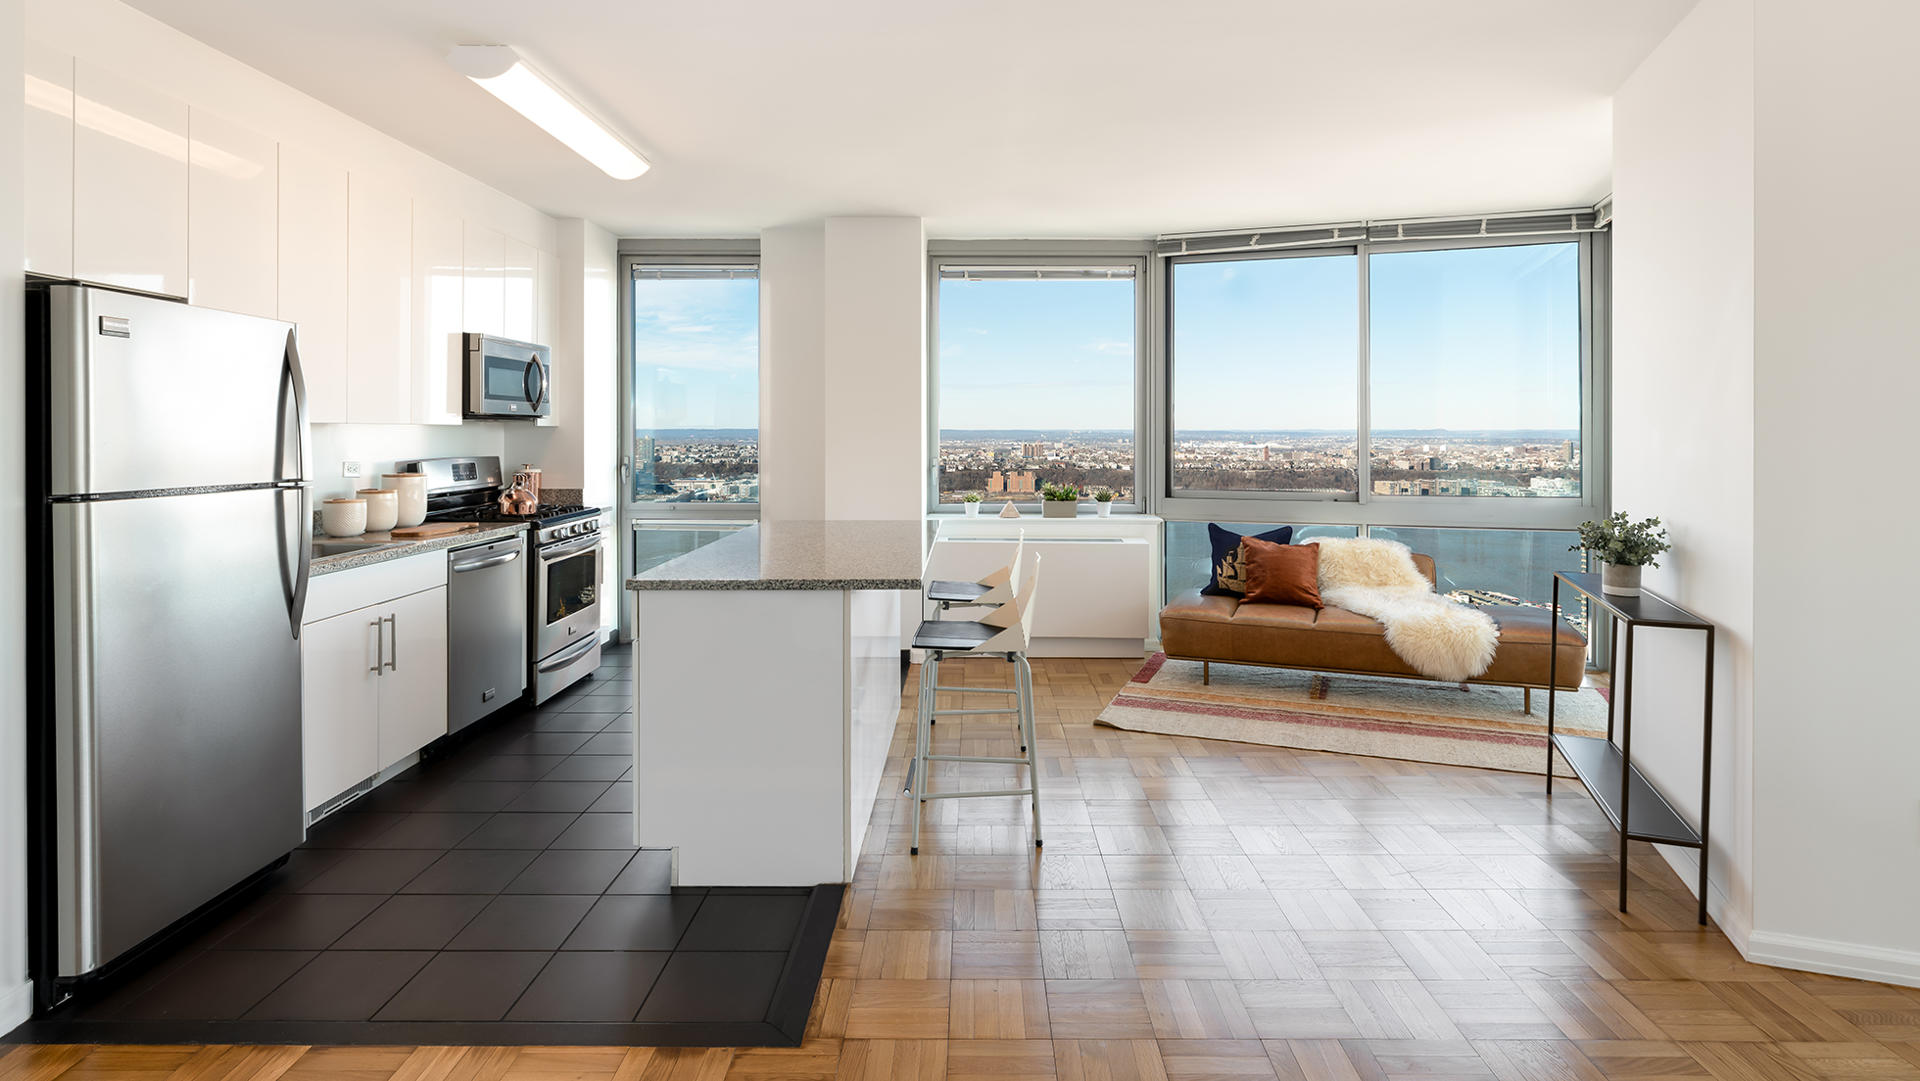 505 W 37th St | Hudson Yards | No Fee Apartments and Office